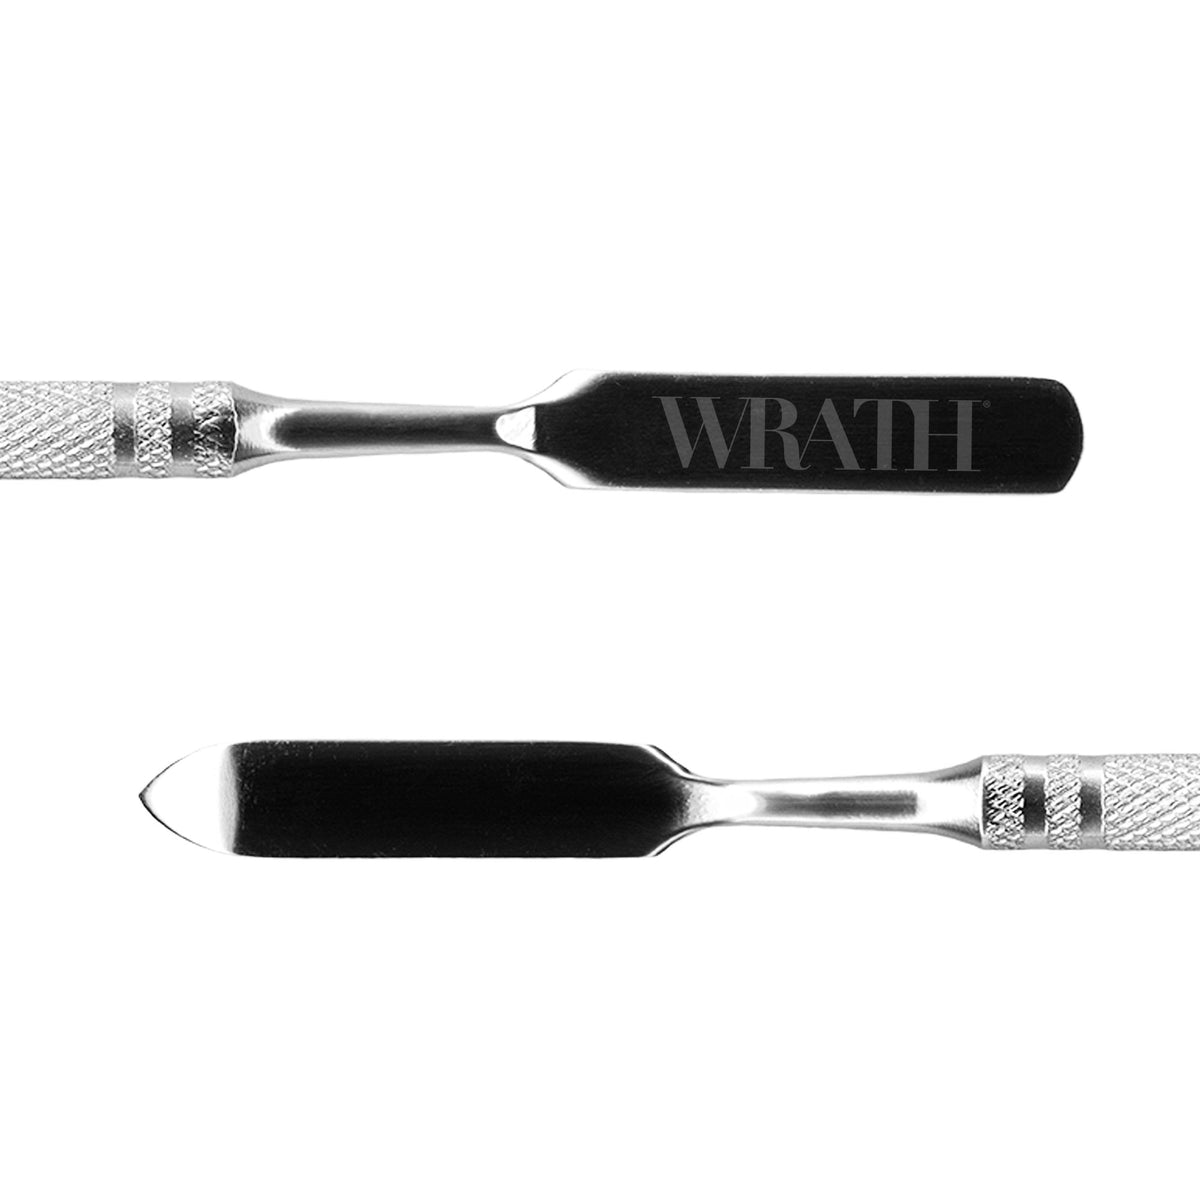 WRATH Stainless Steel Spatula & Palette Set - Red Carpet FX - Professional Makeup